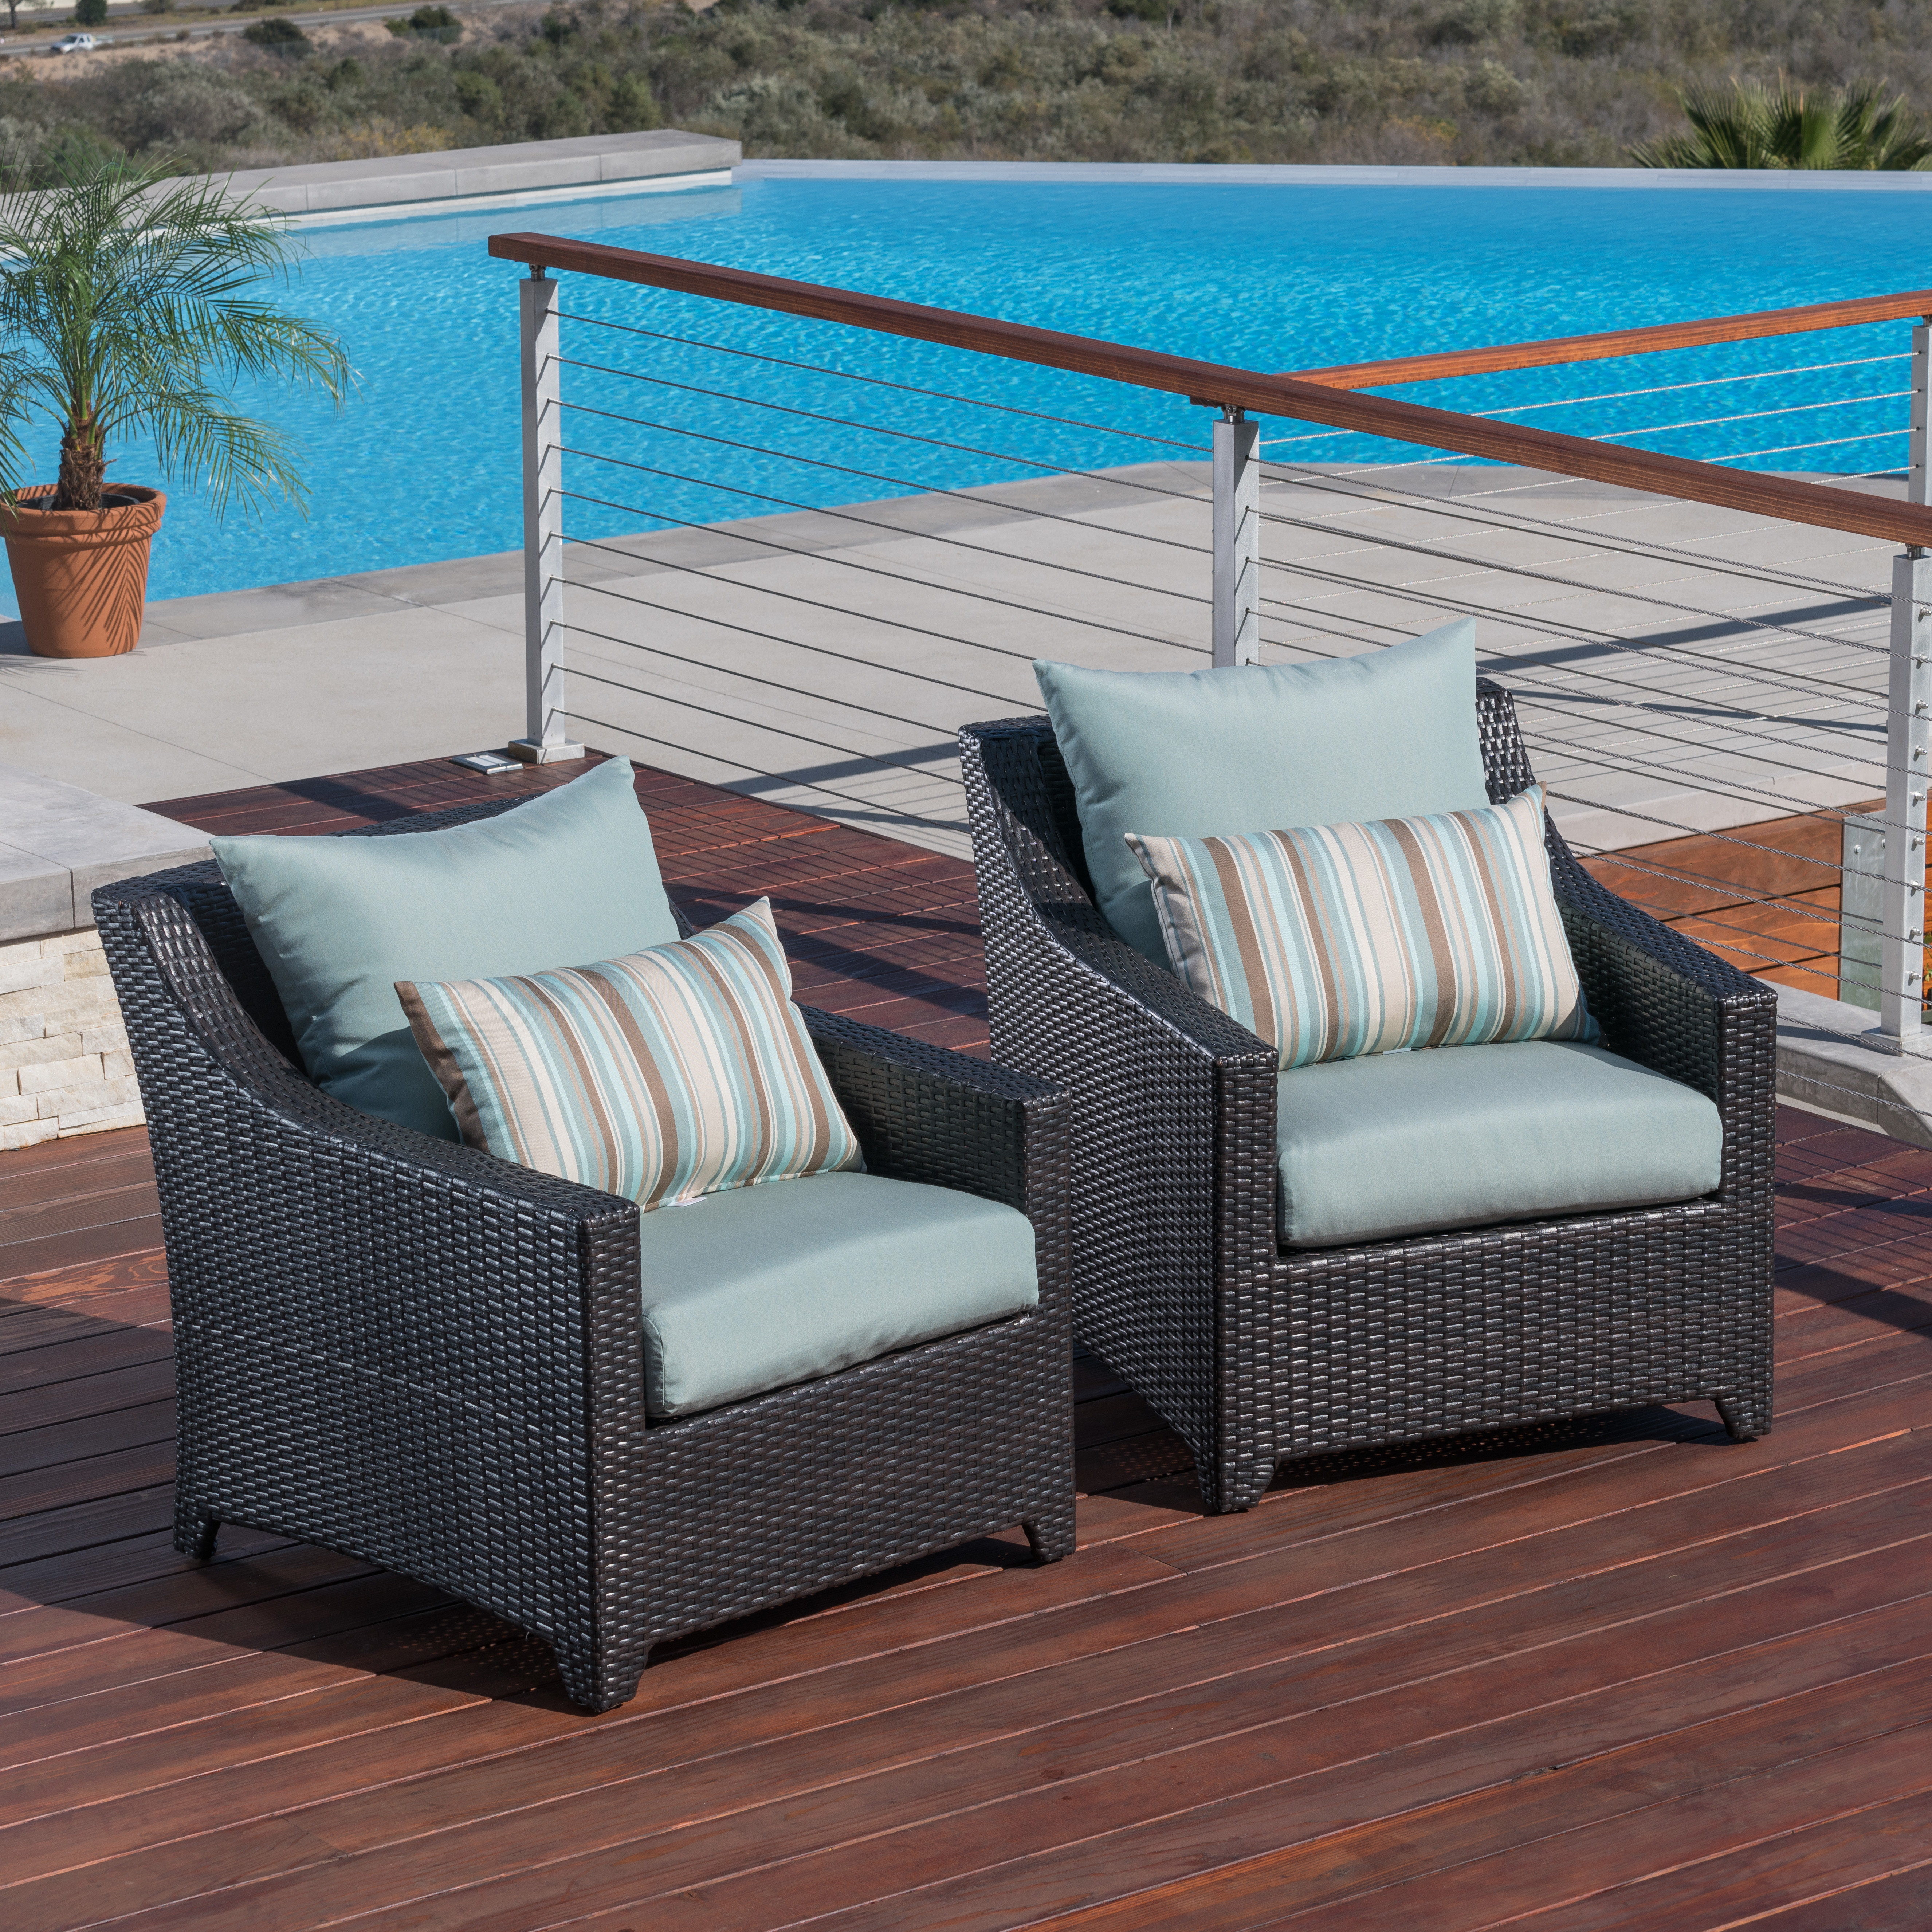 Famous Northridge Patio Sofas With Sunbrella Cushions Regarding Northridge Patio Chair With Cushions (View 3 of 20)